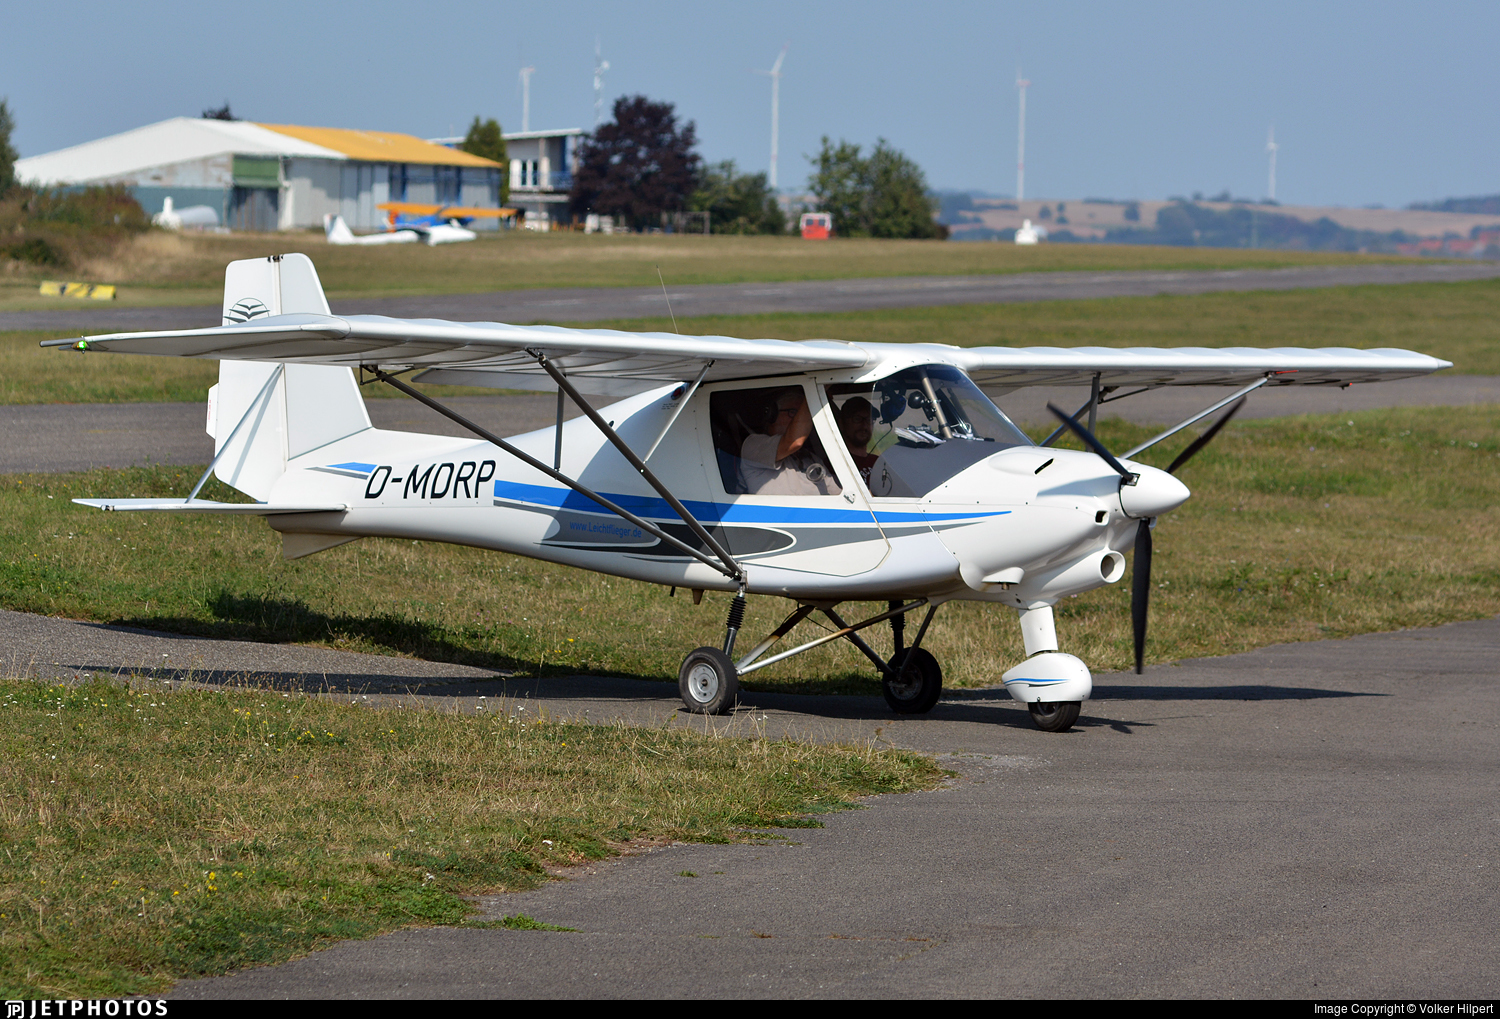 D-MDRP - Ikarus C-42 - Private